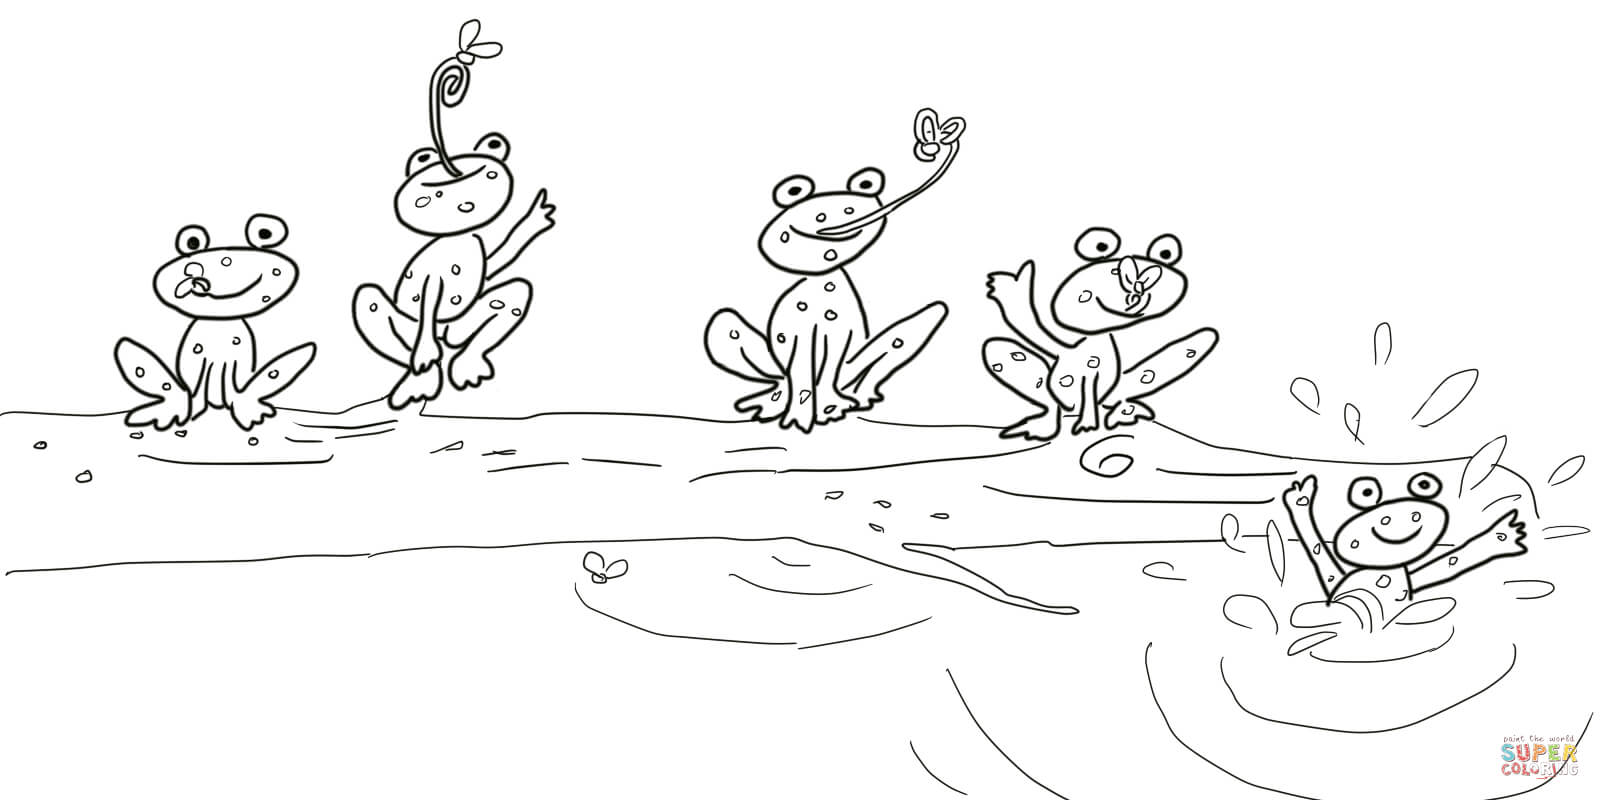 Five Speckled Frogs Coloring Page Coloring Pages